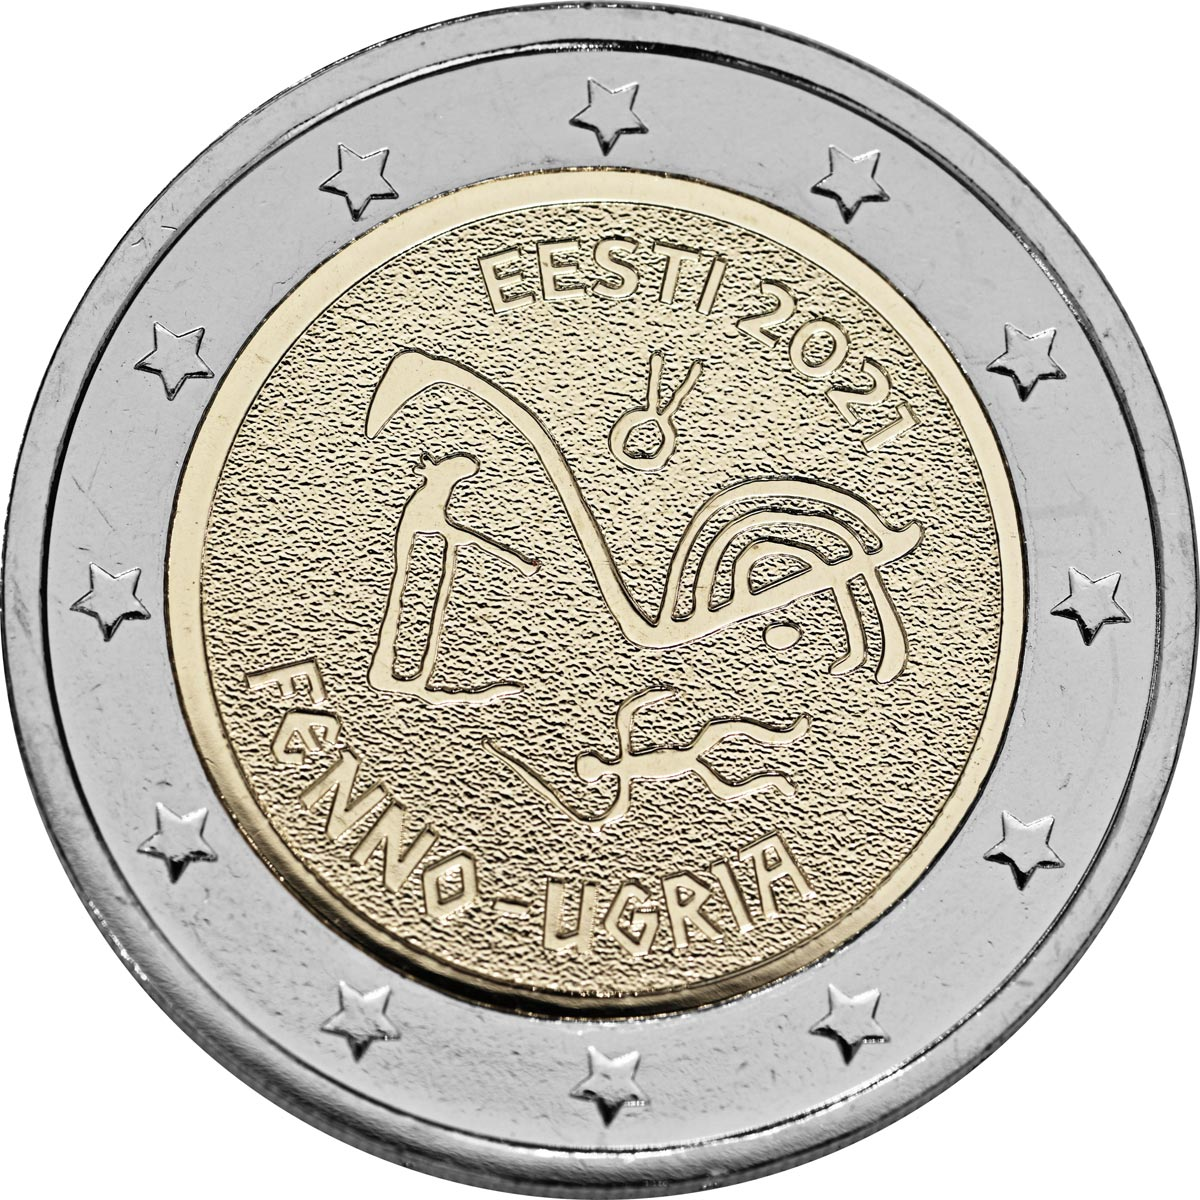 Image of 2 euro coin - The Finno-Ugric Peoples | Estonia 2021